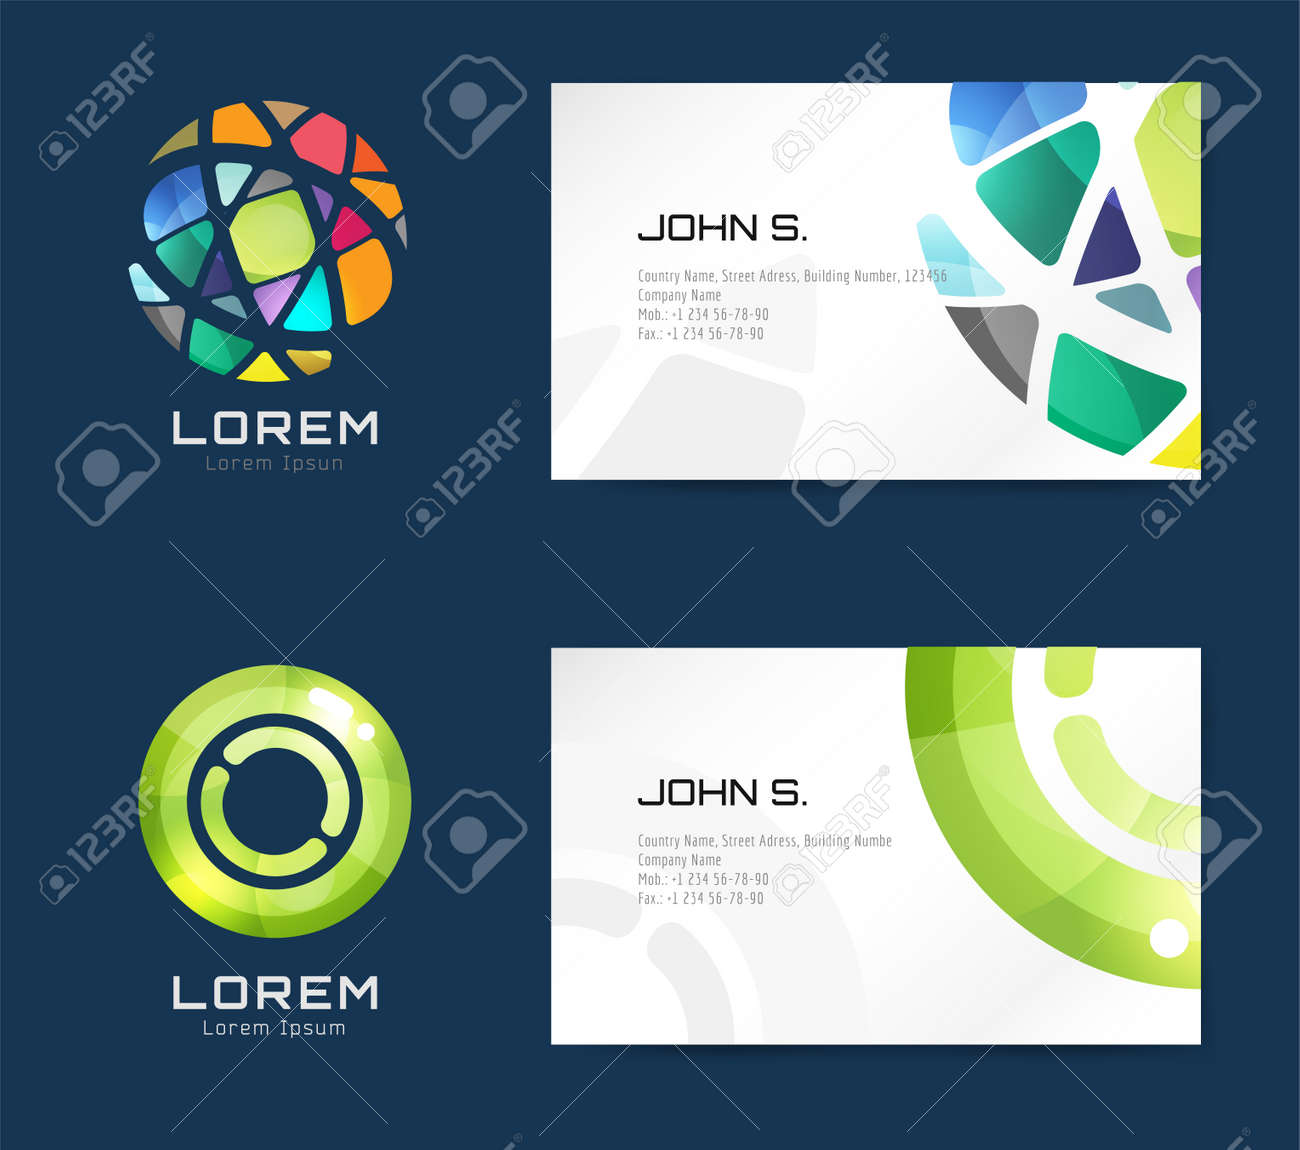 Vector Carte De Visite Modele Defini Globe And Ring Logo Icones Abstract Design Geometrique Faible Poly Et Cartes Didentite Creatives